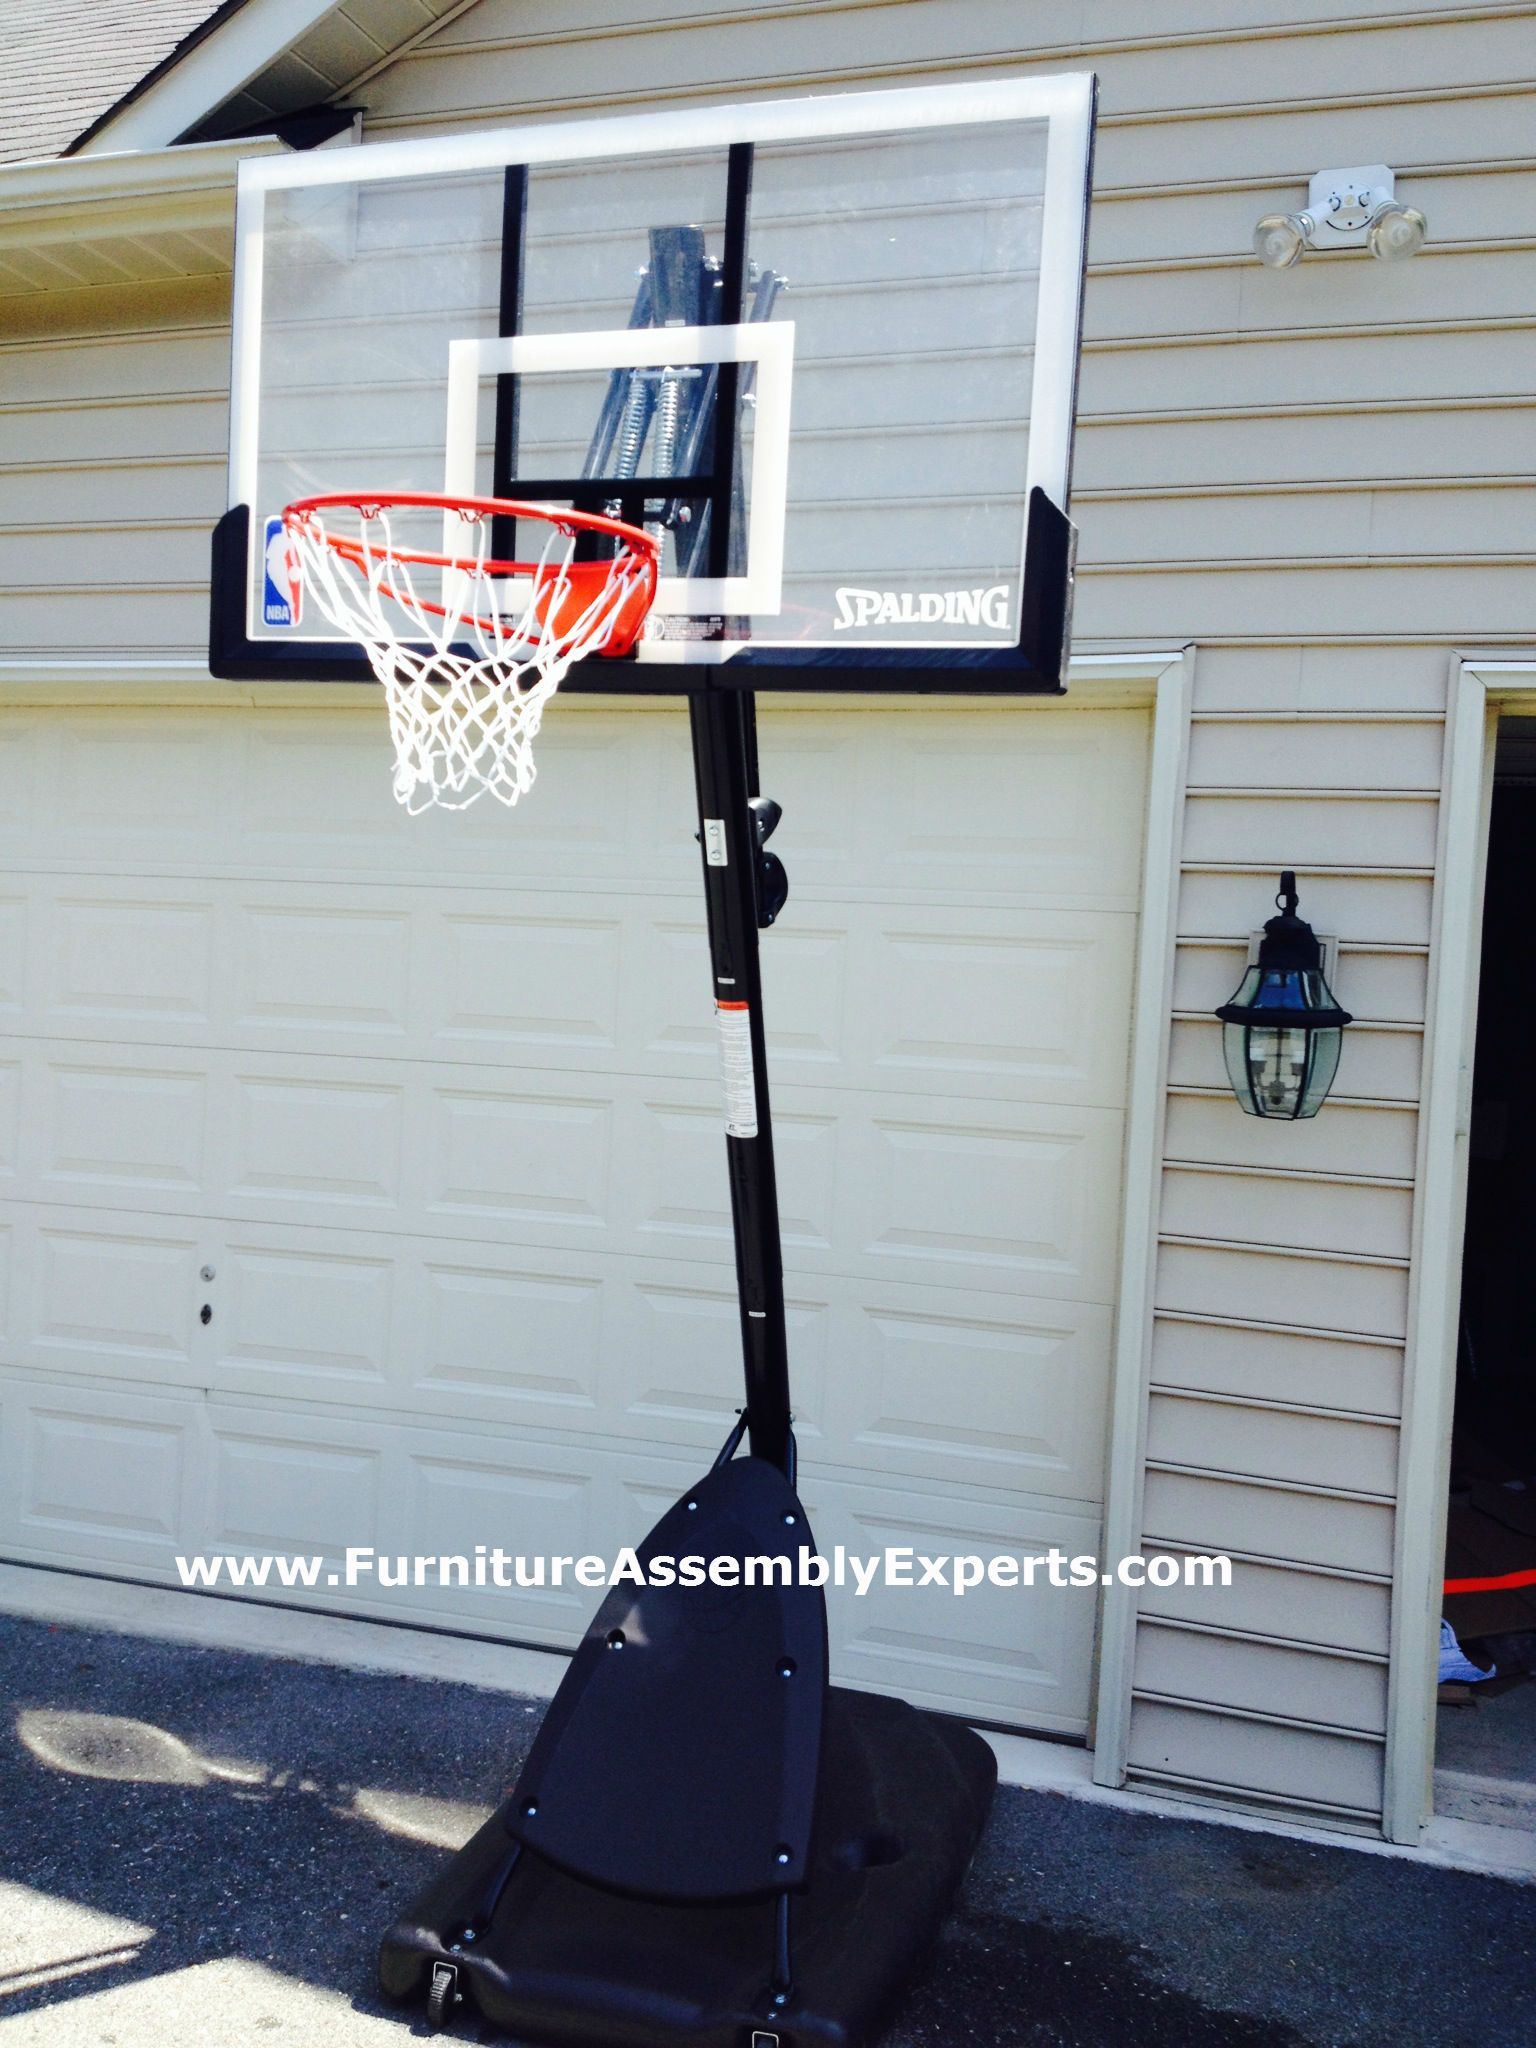 Pin By Furniture Assembly Experts Of On Furniture Assembly Experts Dc Md Va Atl Portable Basketball Hoop Assembly Service Contractor Portable Basketball Hoop Spalding Basketball Hoop Basketball Hoop